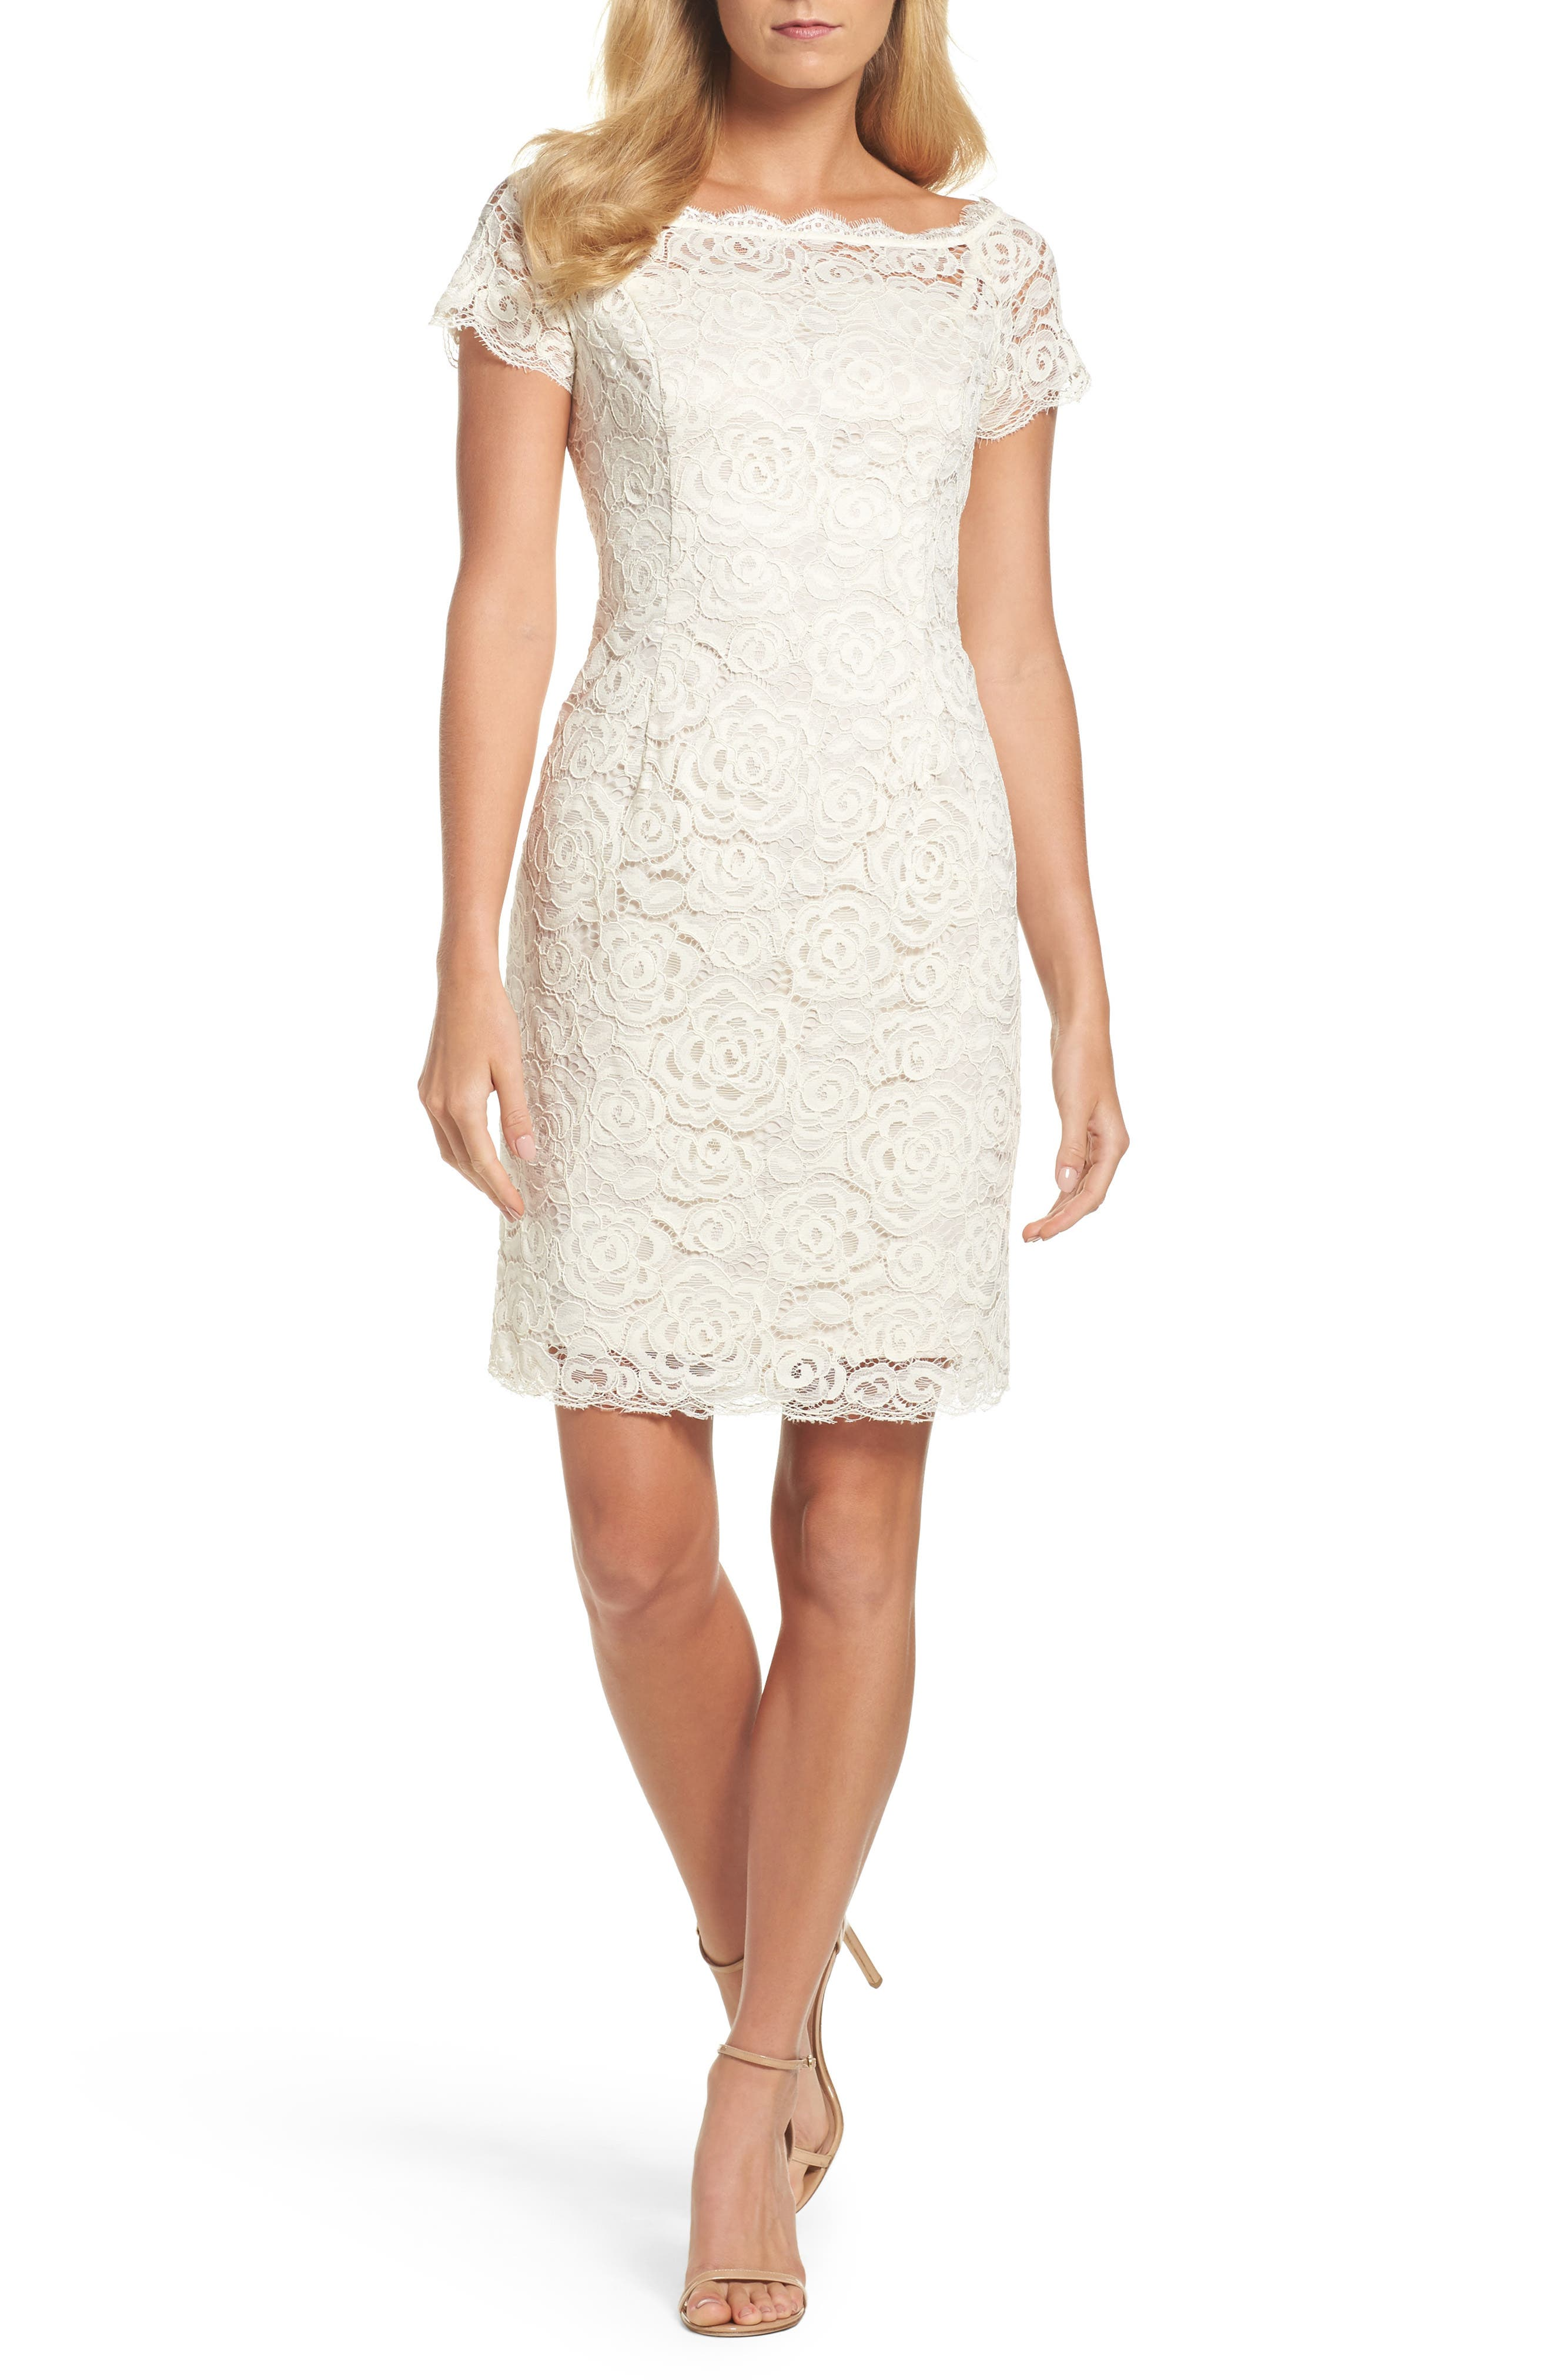 Adrianna Papell Off the Shoulder Lace Sheath Dress (Regular & Petite)